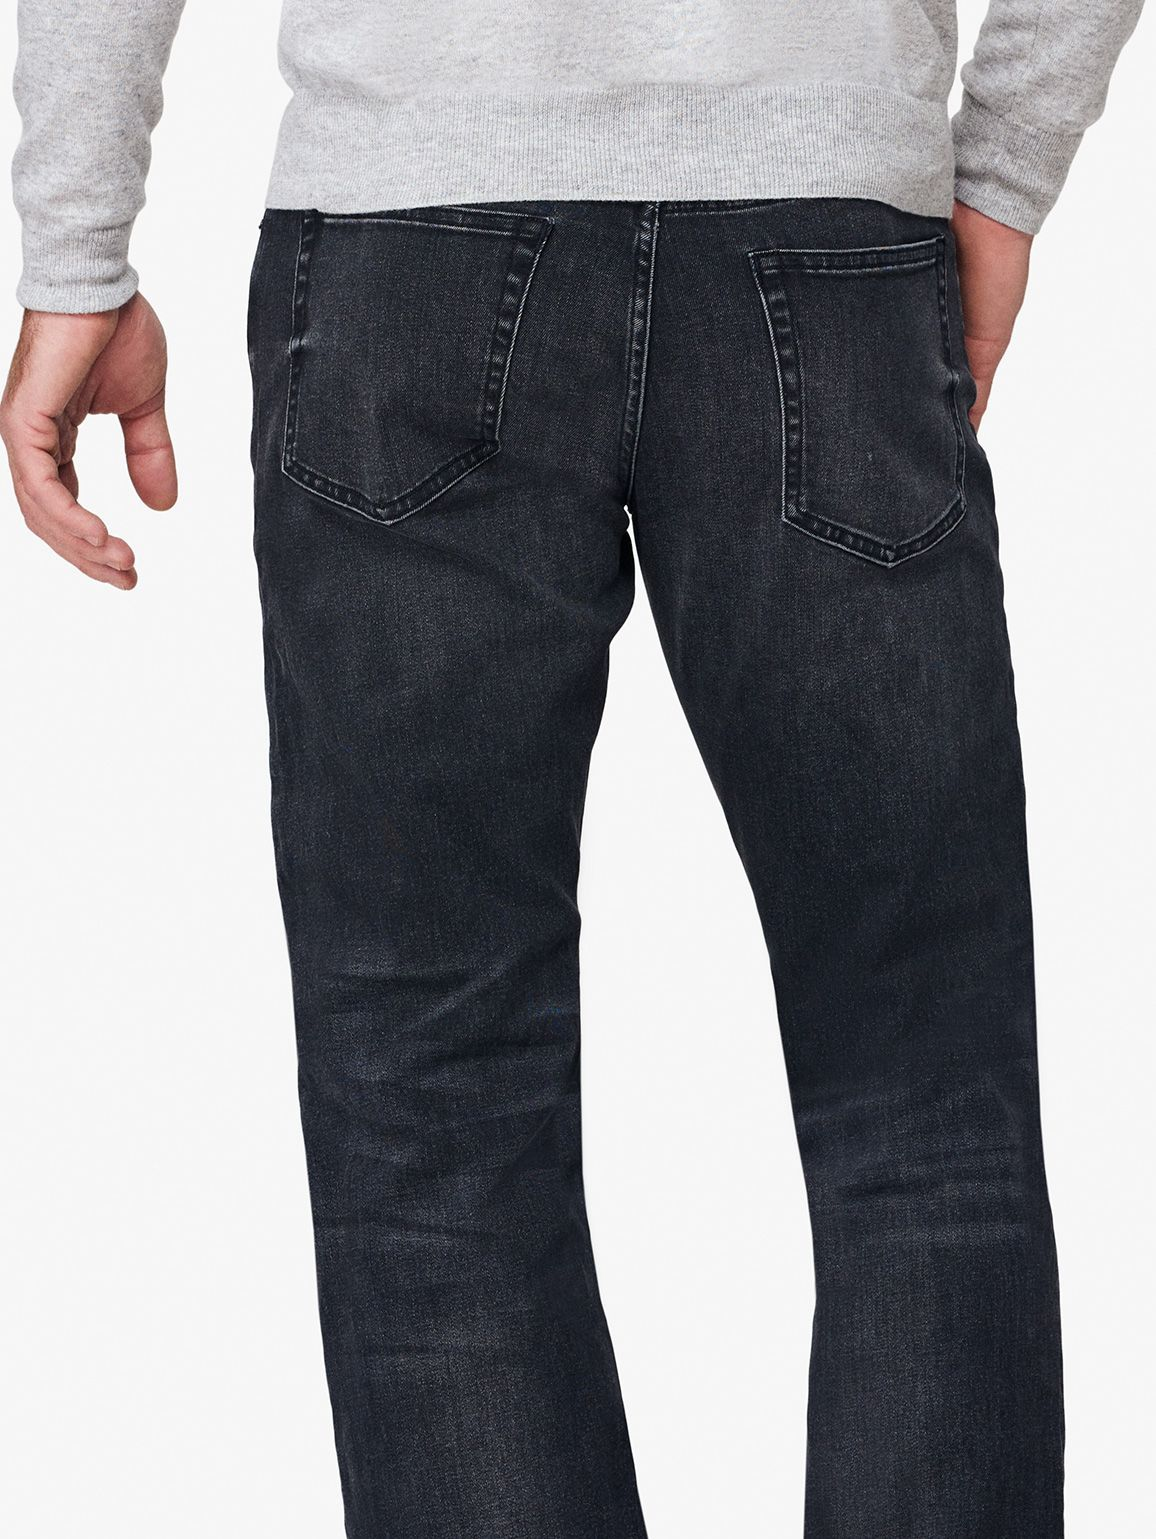 DL1961 JEANS Avery Modern Straight Fit Jean-Blacksmith 10236